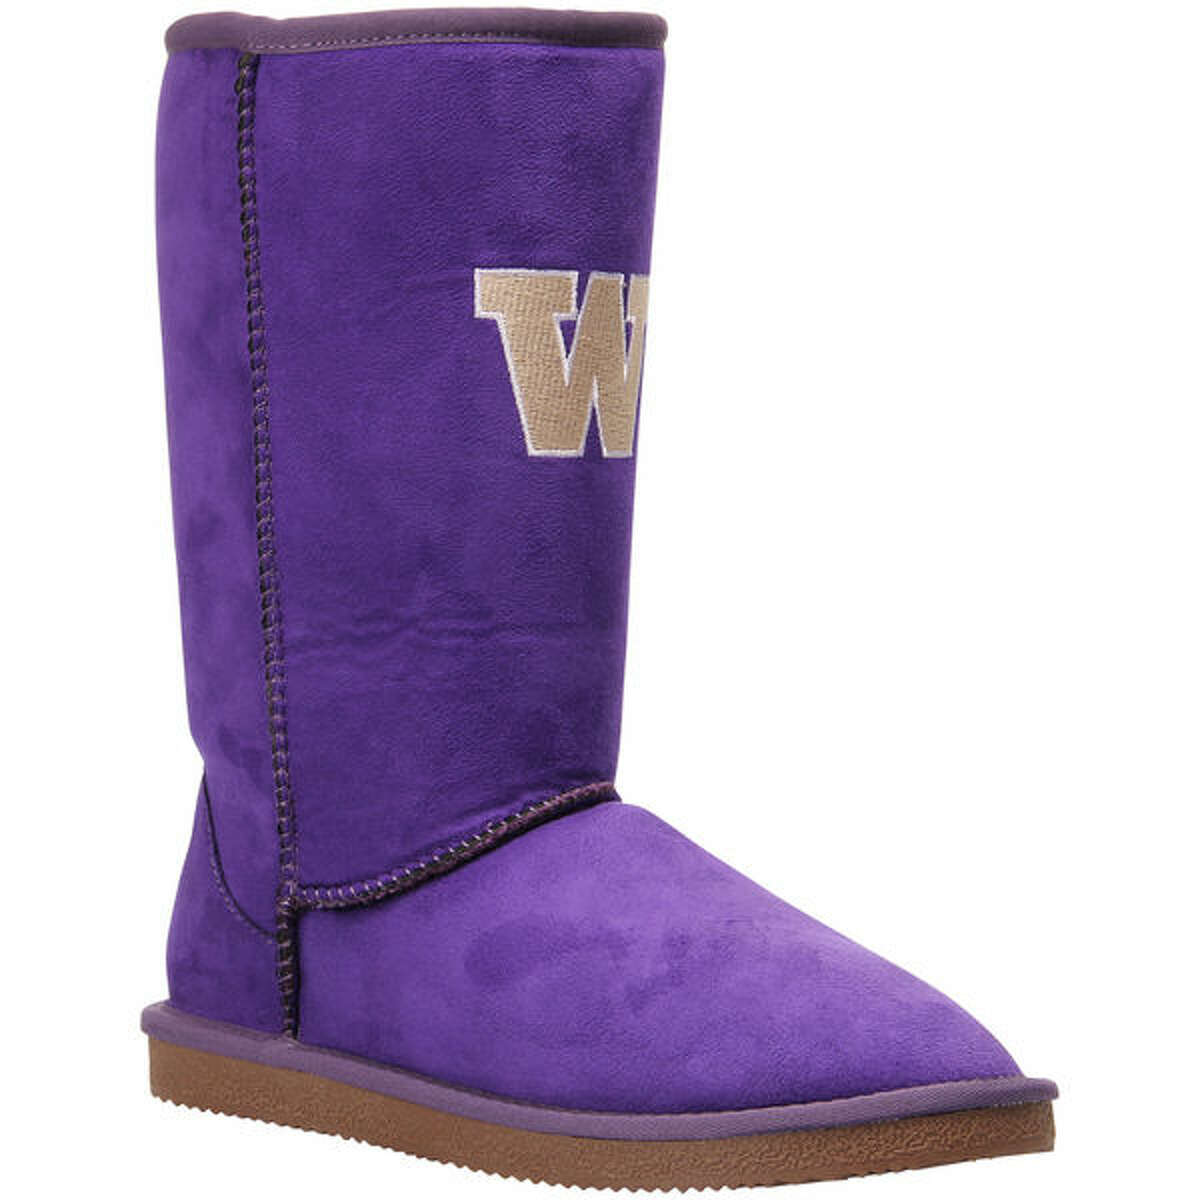 First, we have the low-hanging fruit of these UGG knock-offs in Grimace-purple.